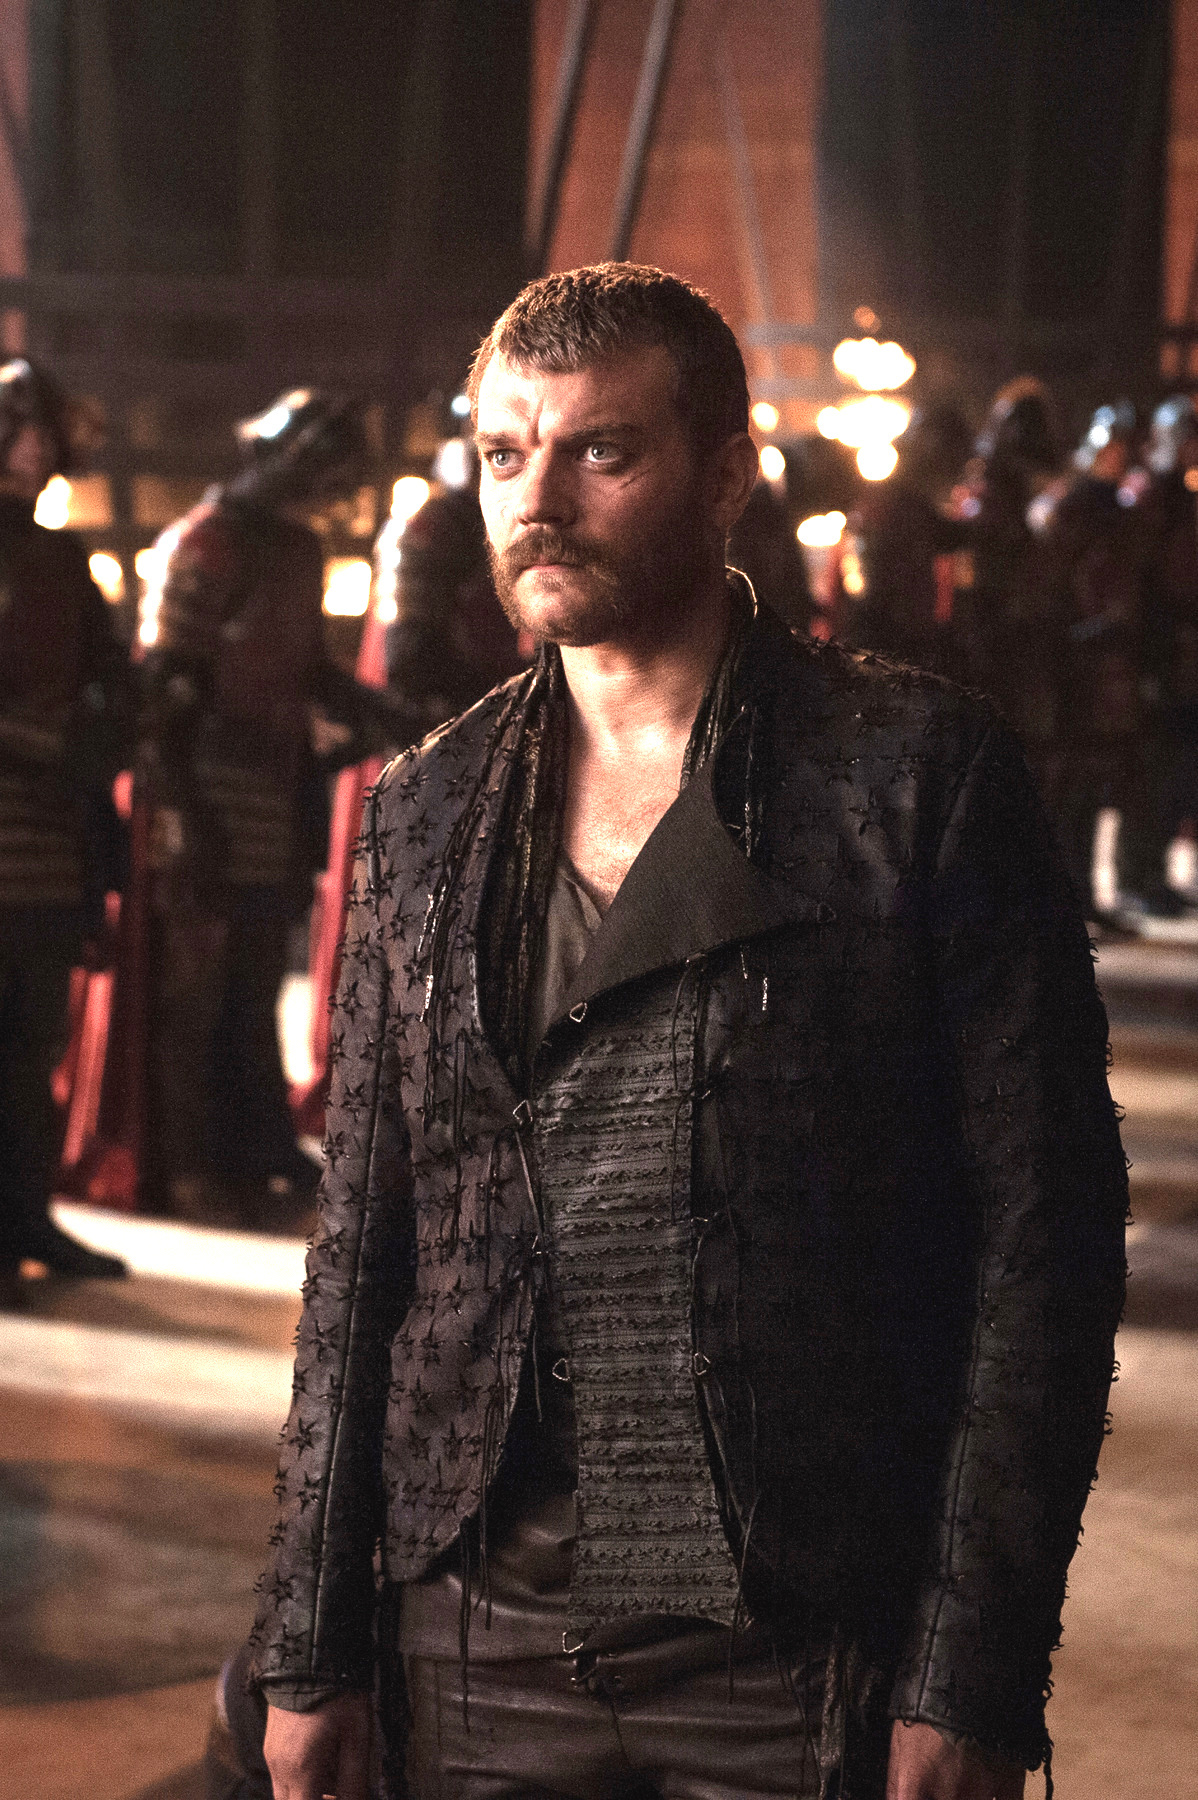 euron greyjoy is just on game of thrones for the costumes inverse